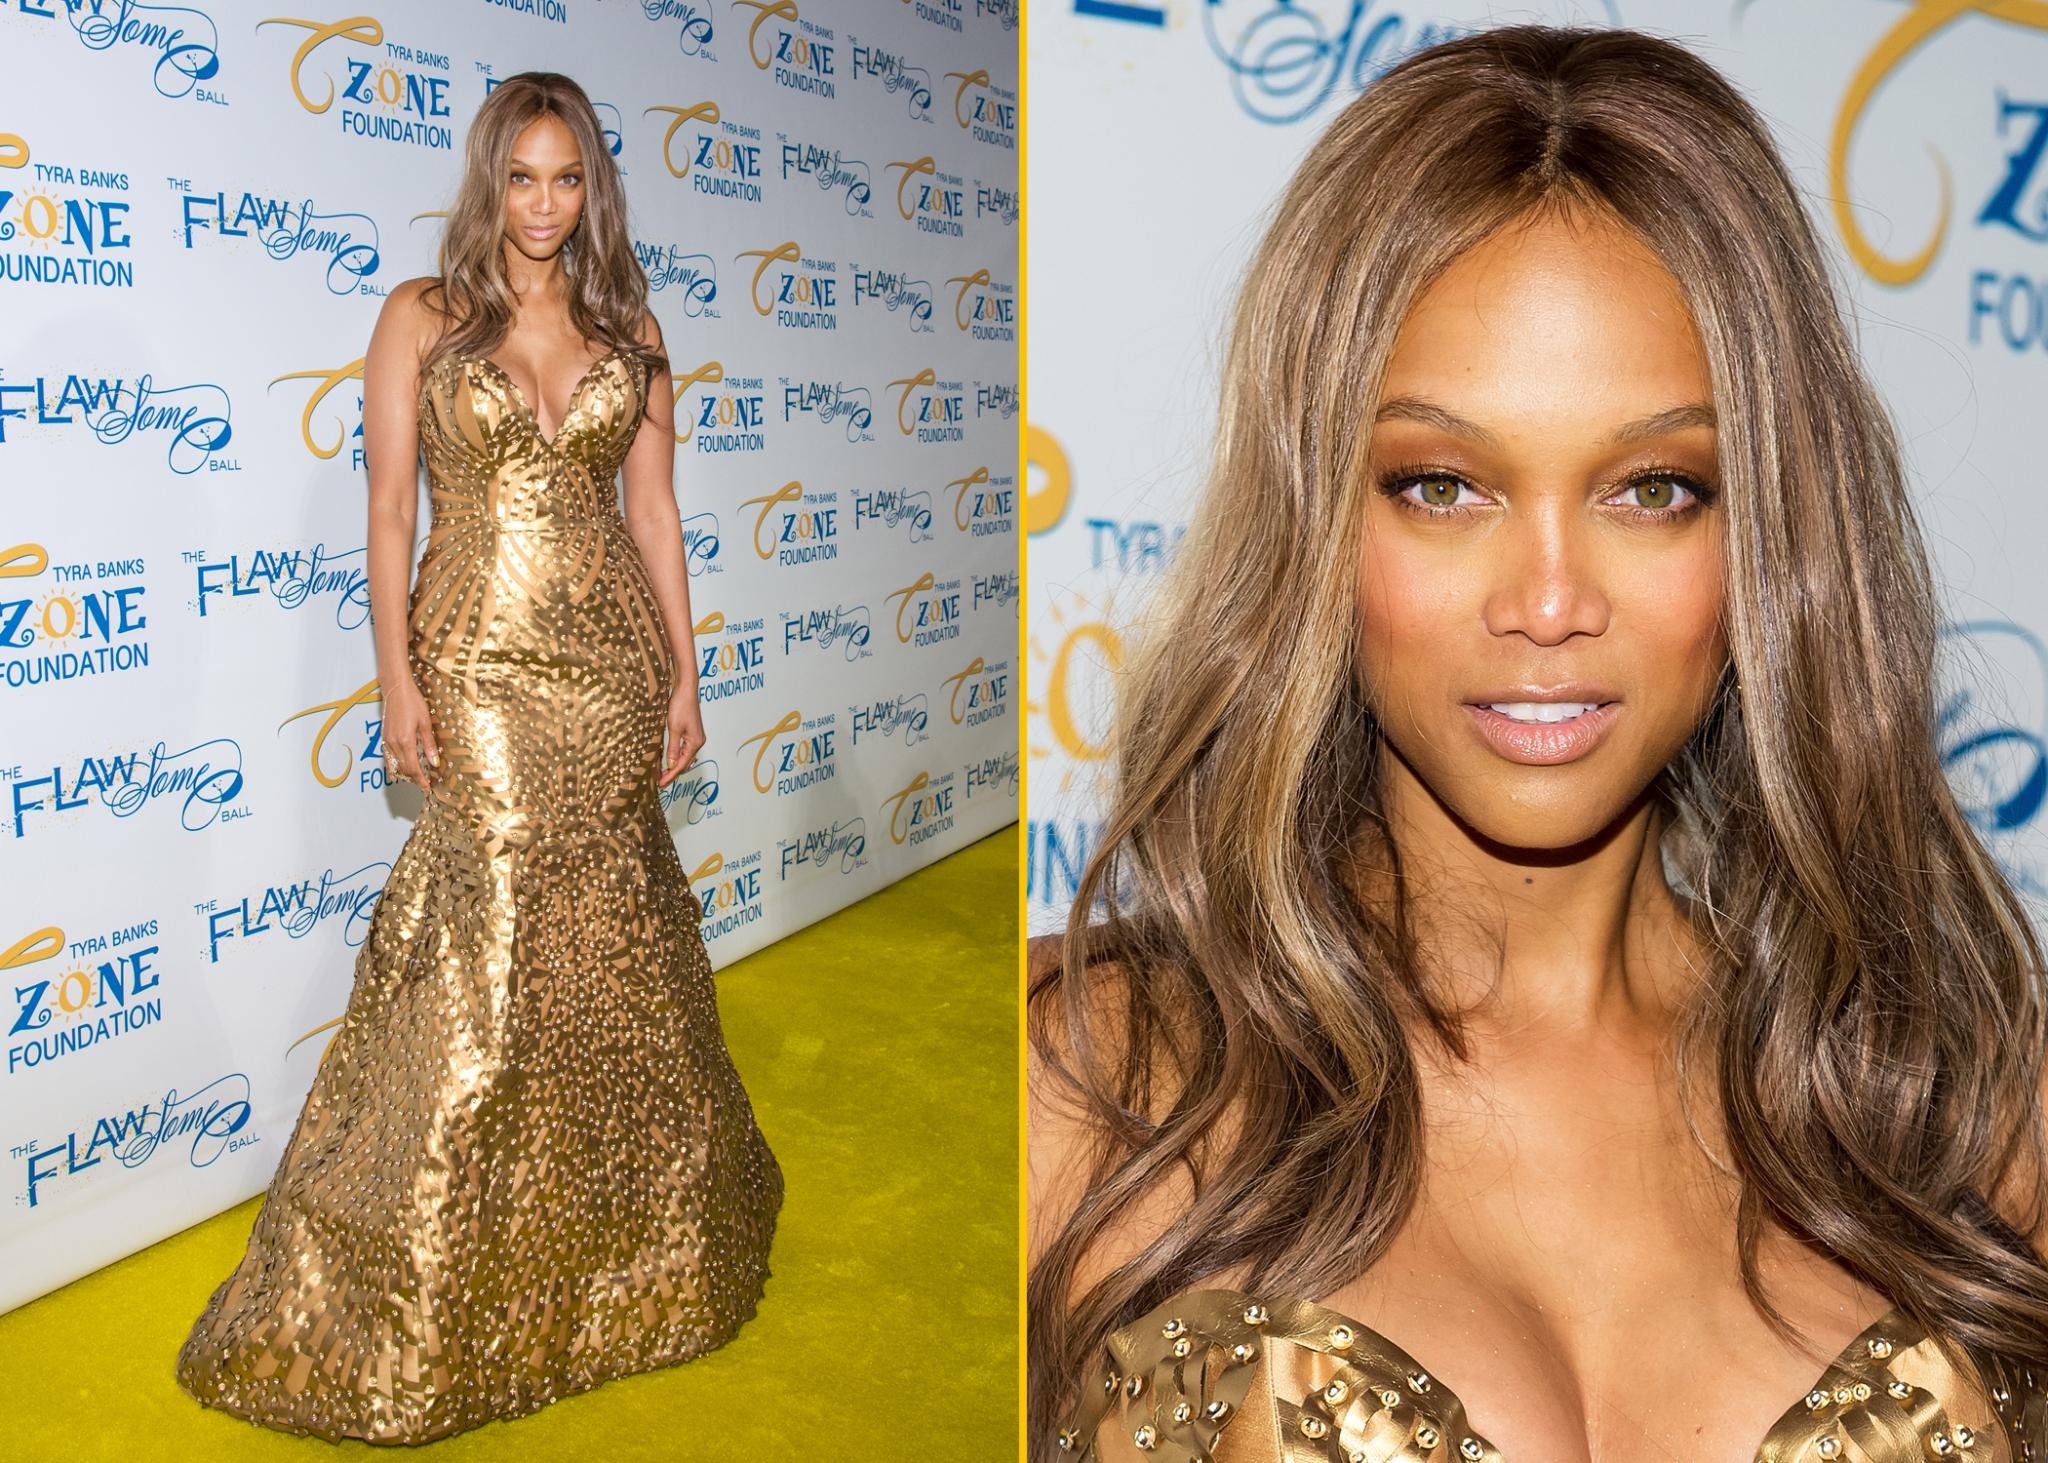 tyra banks hottest female reality tv stars